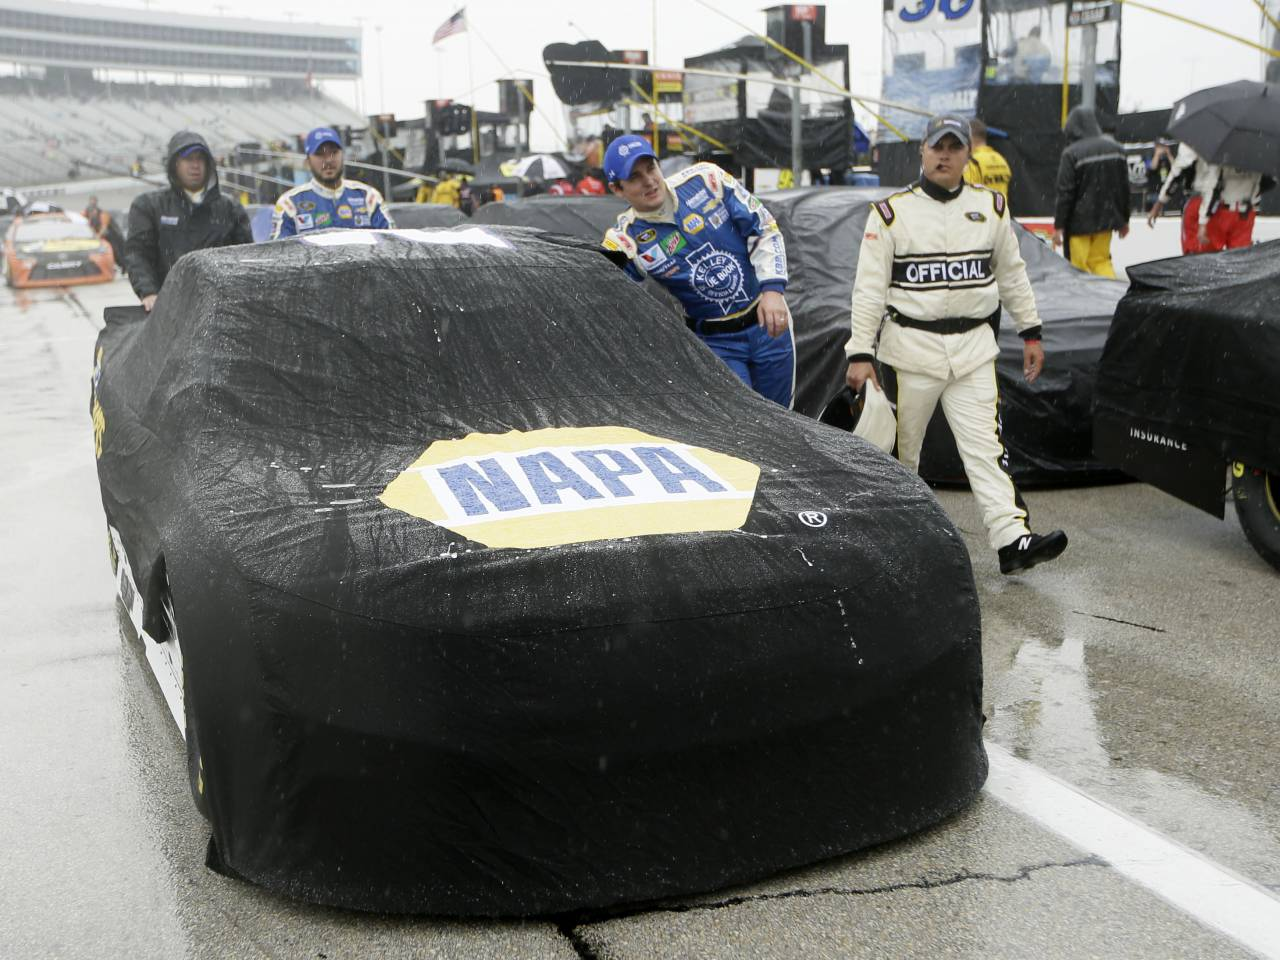 NASCAR Sprint Cup race at Texas underway after 6-hour delay